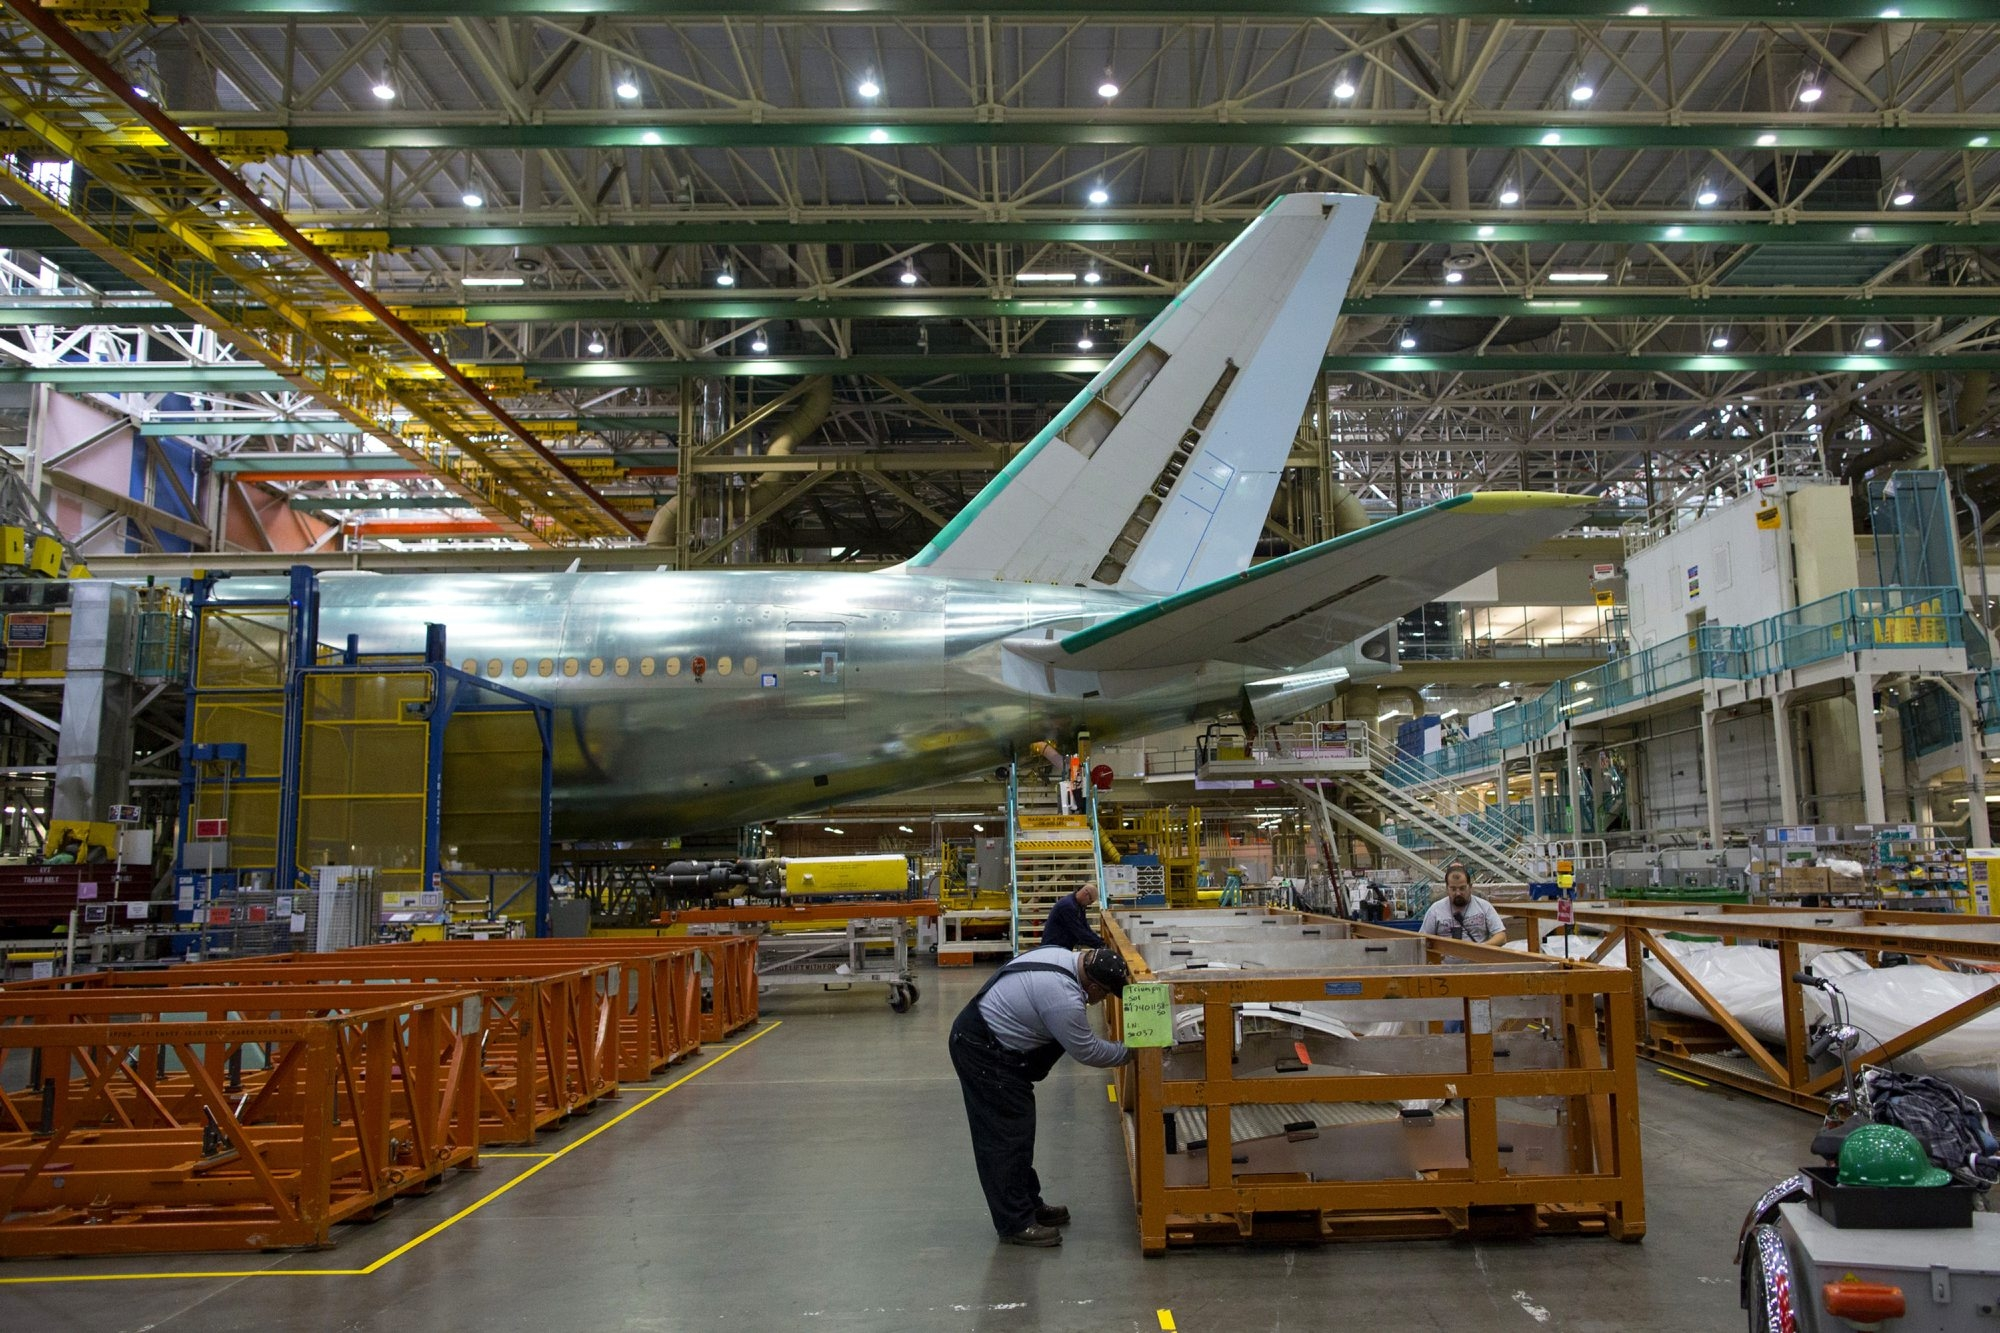 Boeing Co. stock dropped 4.5 percent as investors worried about the cost of building its 787 Dreamliner.  The company was expected to report betters results for the rest of its commercial unit, including the 777s built at Everett, Wash.